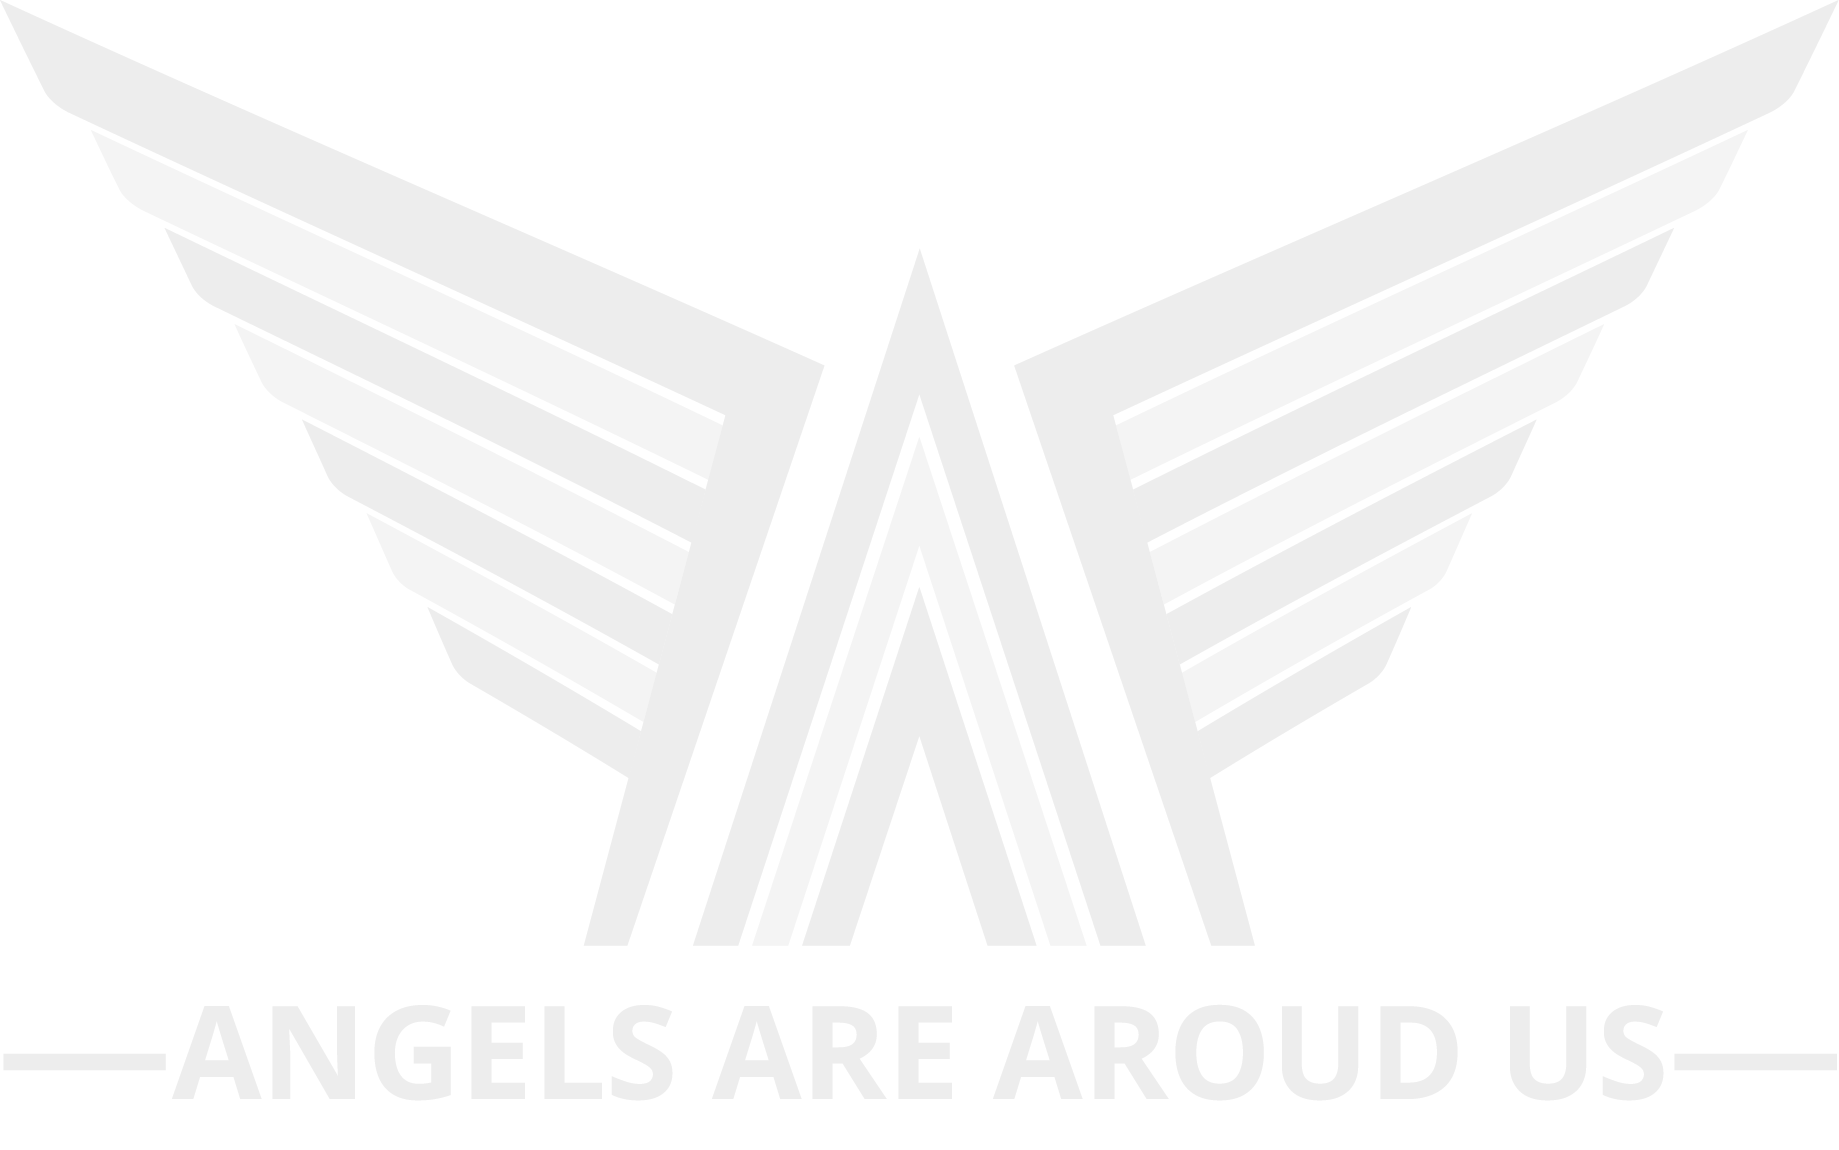 Angels are around us